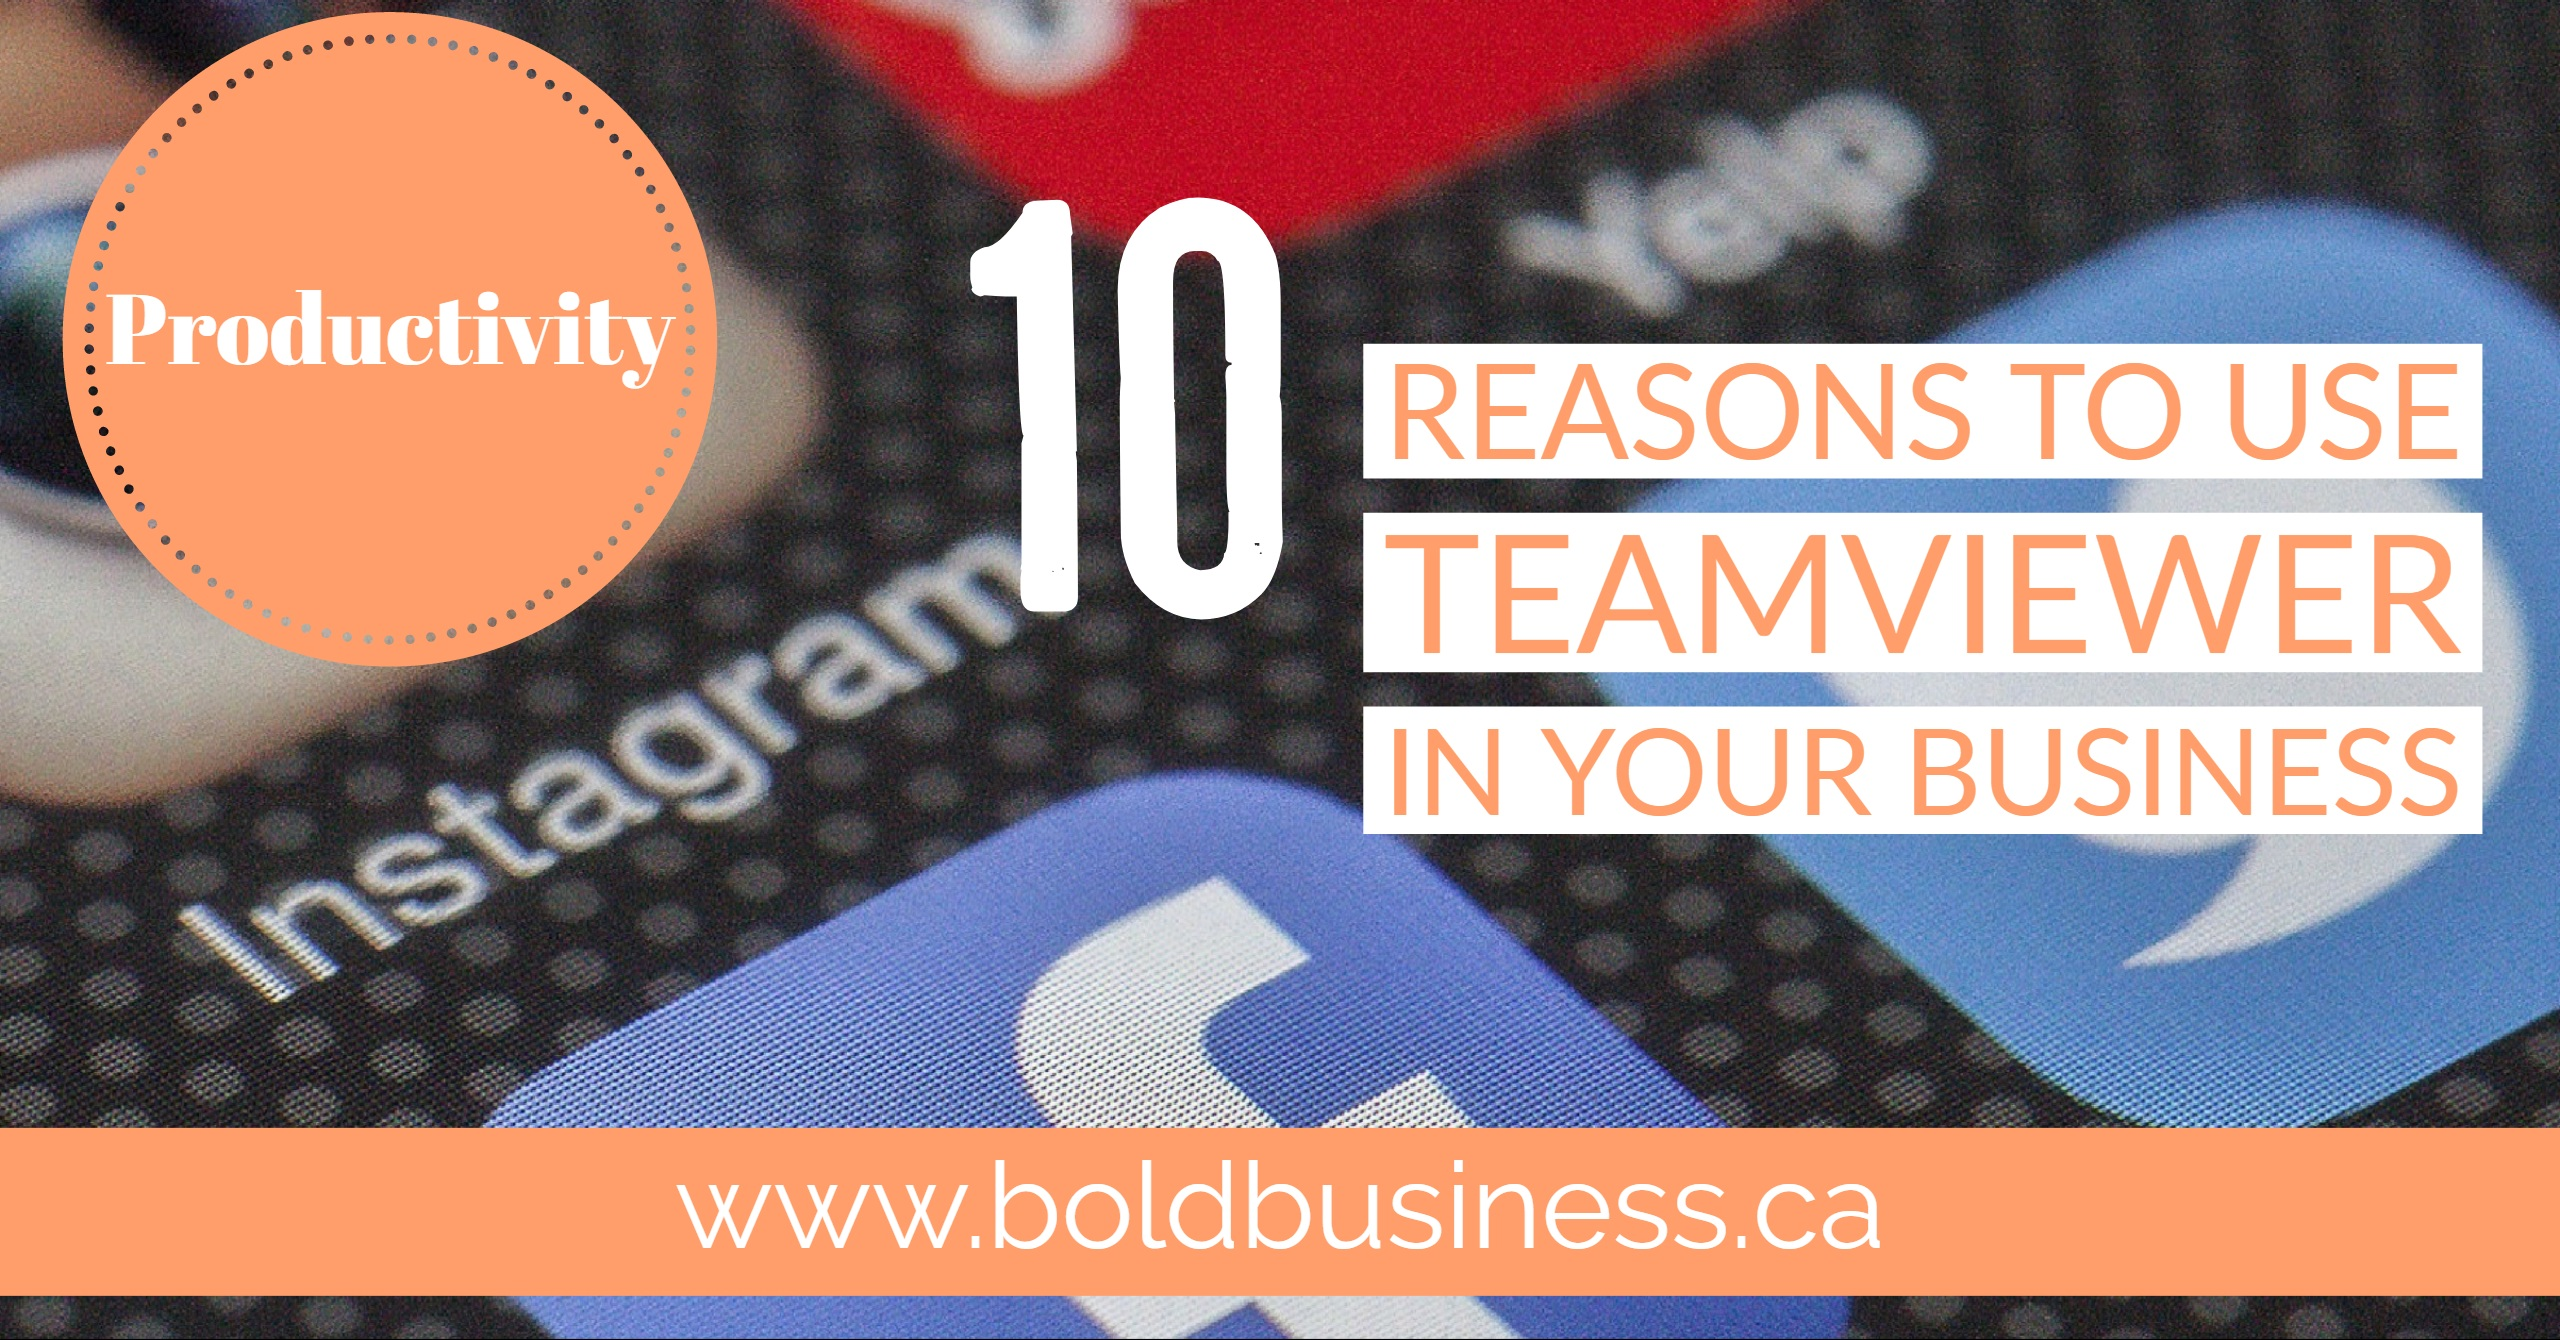 10 REASONS to use teamviewer